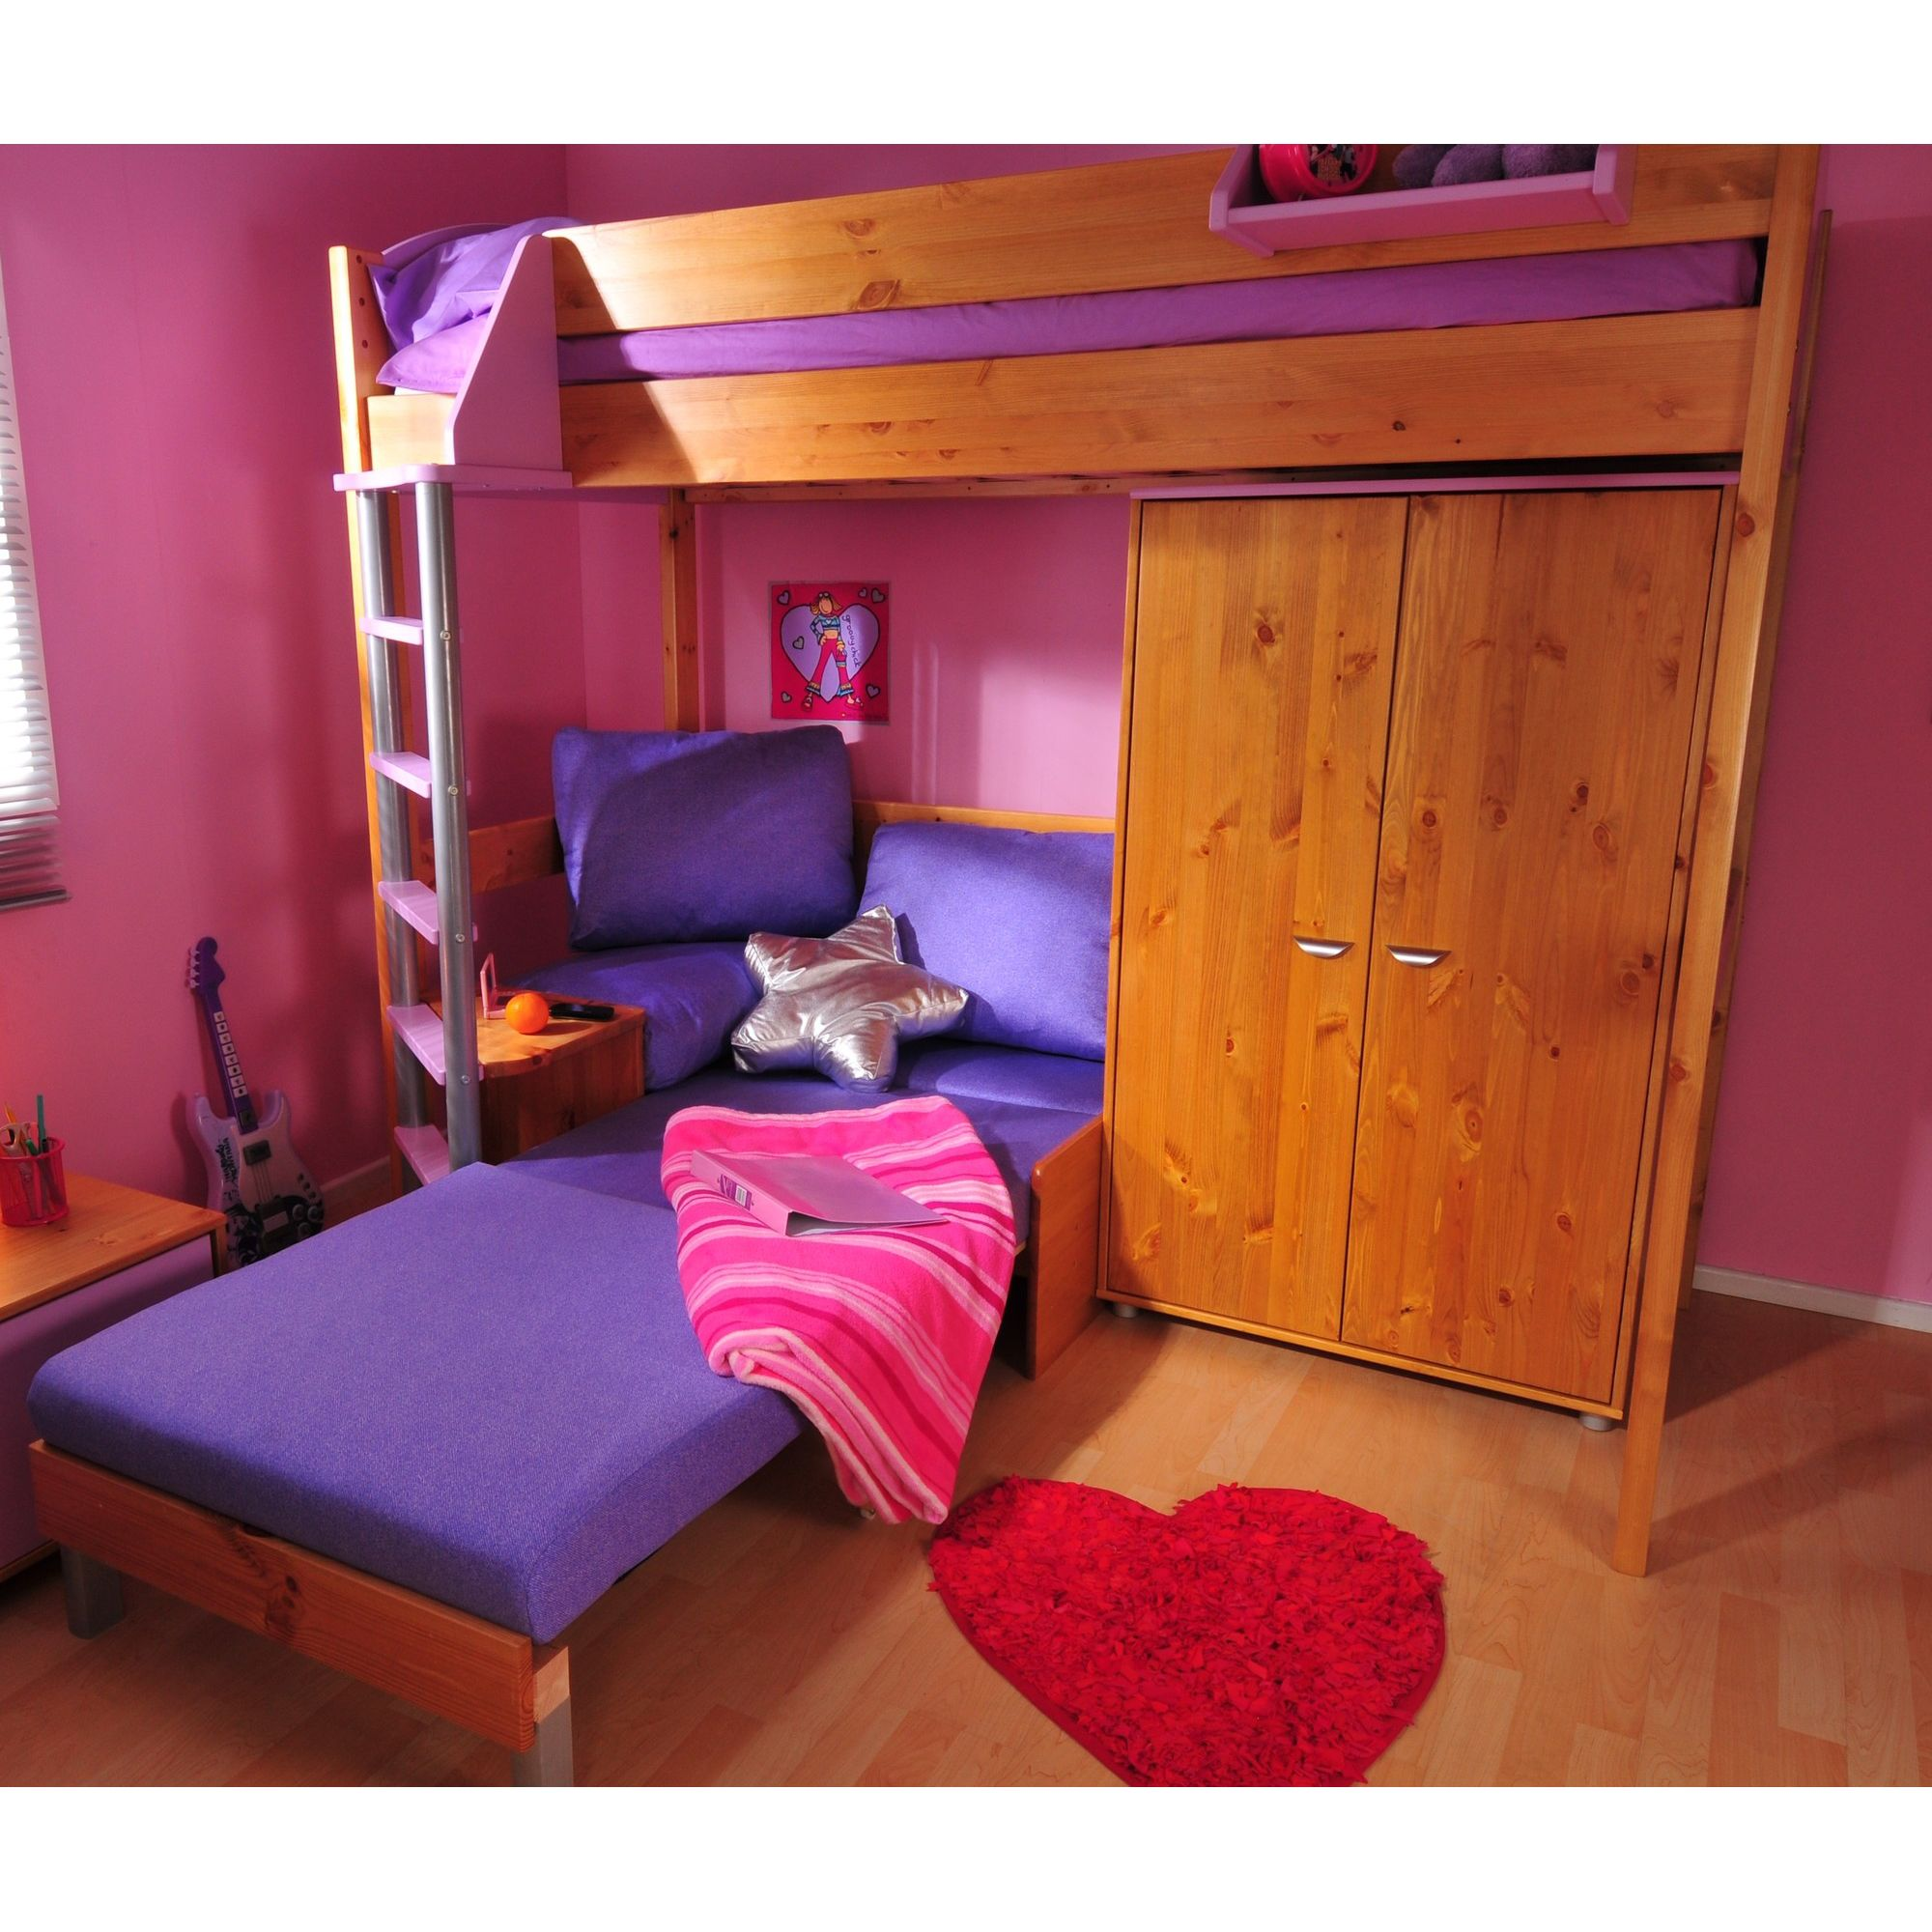 Stompa Casa High Sleeper with Sofa Bed and Wardrobe - Antique - Blue - Pink at Tesco Direct